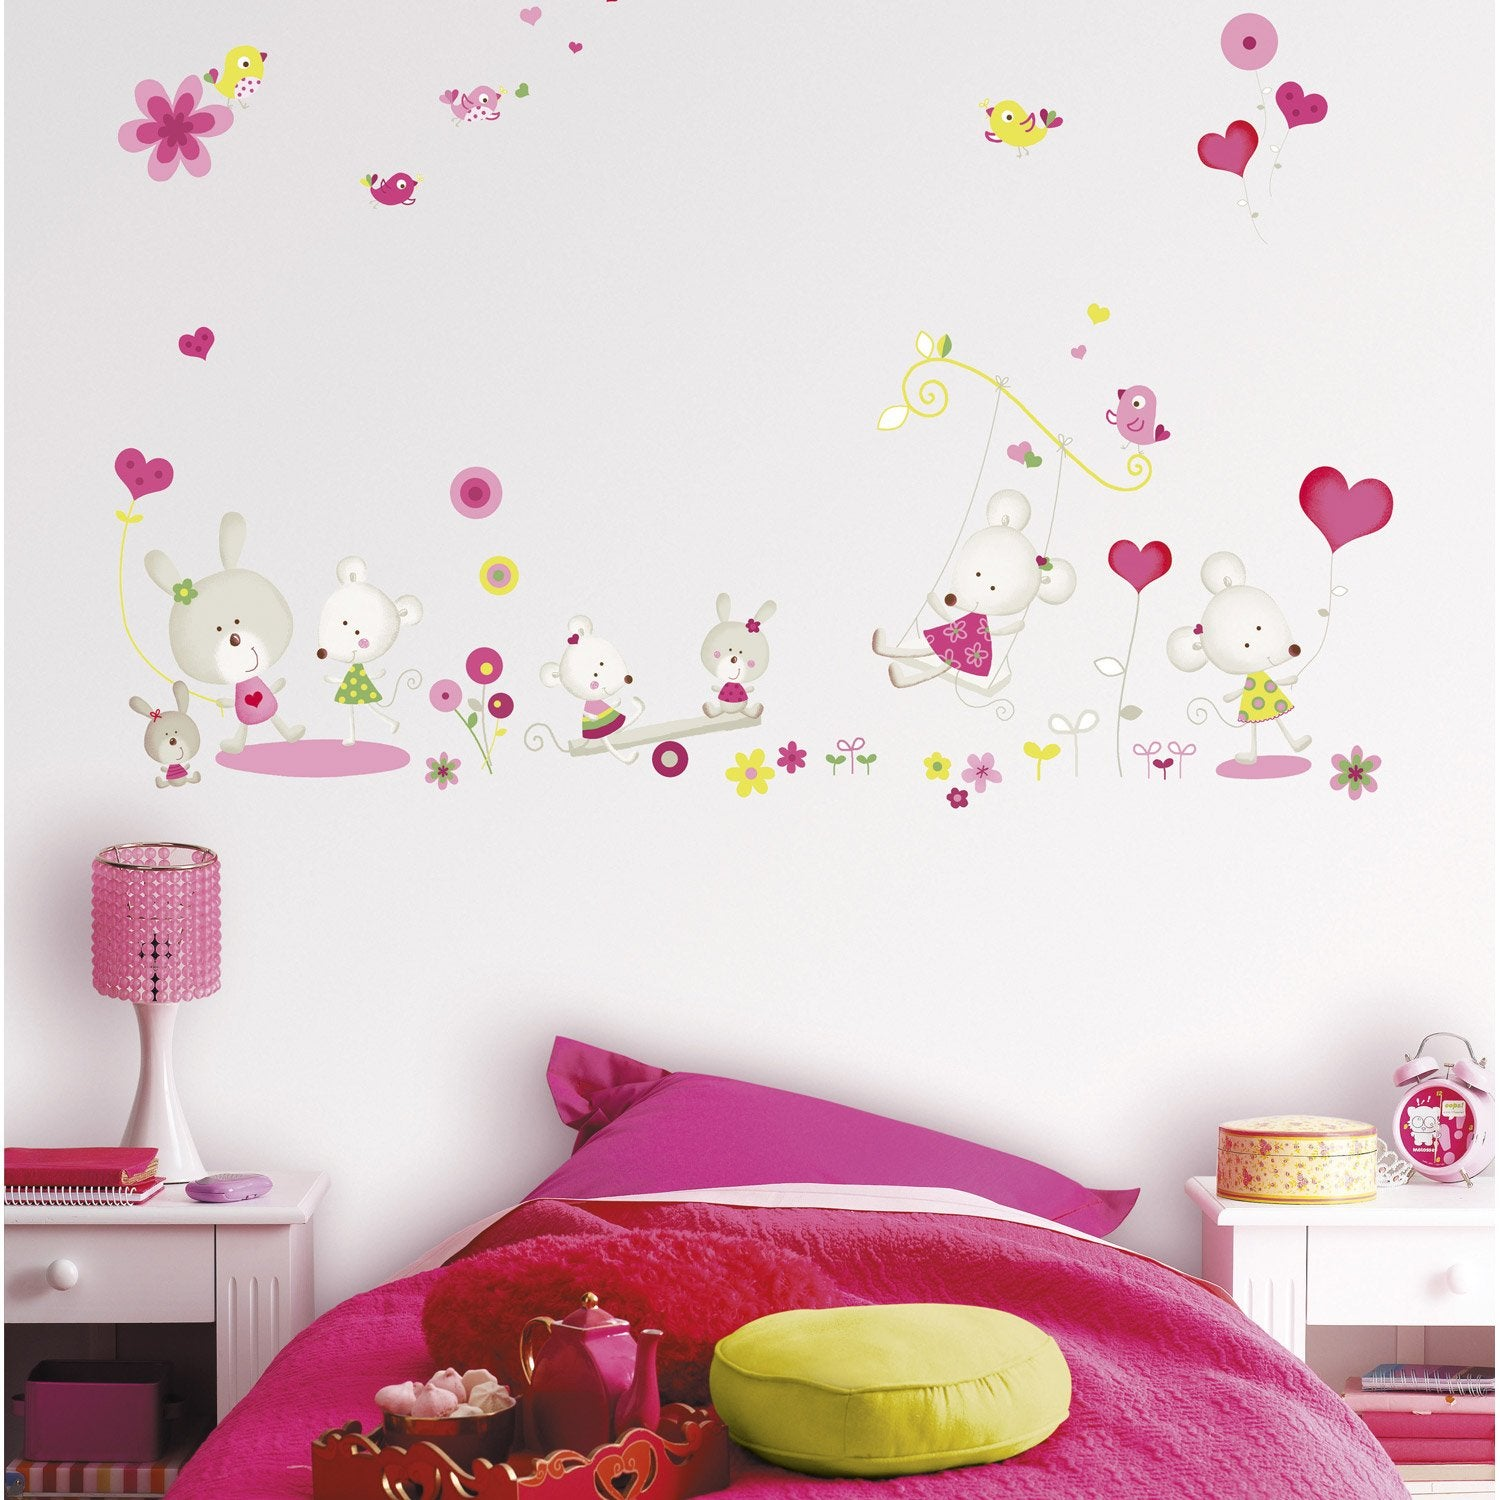 sticker miss mousse 47 cm x 67 cm leroy merlin. Black Bedroom Furniture Sets. Home Design Ideas